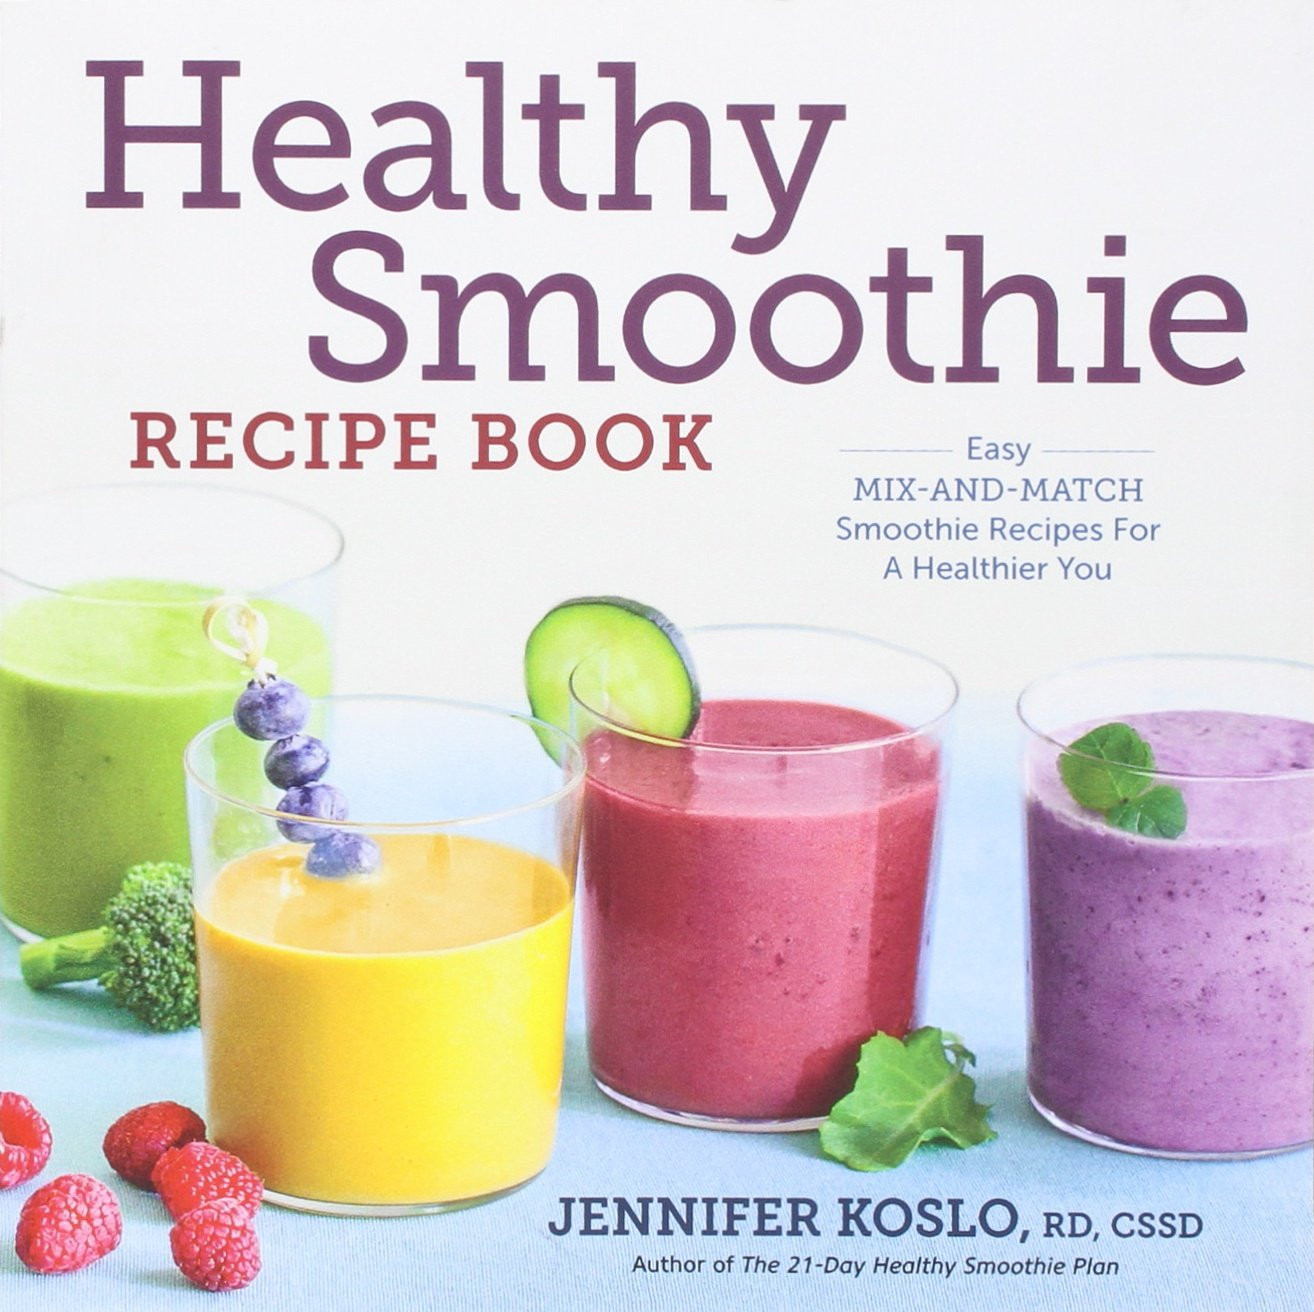 Best Healthy Smoothie Recipes  Cheapest copy of Healthy Smoothie Recipe Book Easy Mix